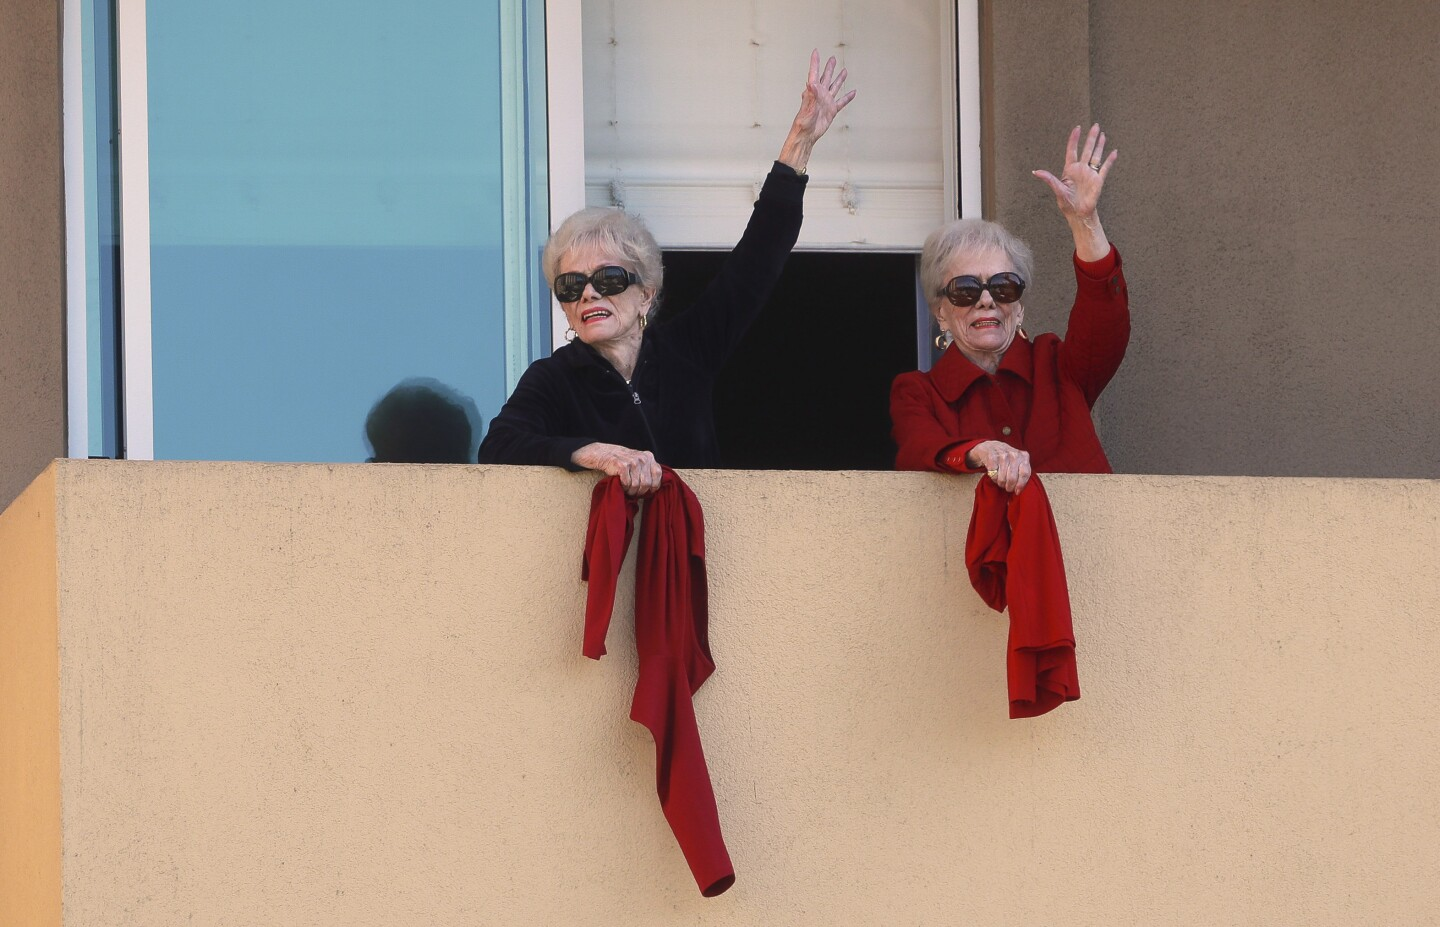 Joyce Kriesmer, 91, right, and her twin sister Jackie Voskamp wave from their balcony at Vi at La Jolla Village as they and several other quarantined residents of the senior living apartment building gather on their balconies to participate in a daily afternoon pep rally on Wednesday, April 1, 2020 in San Diego, California.